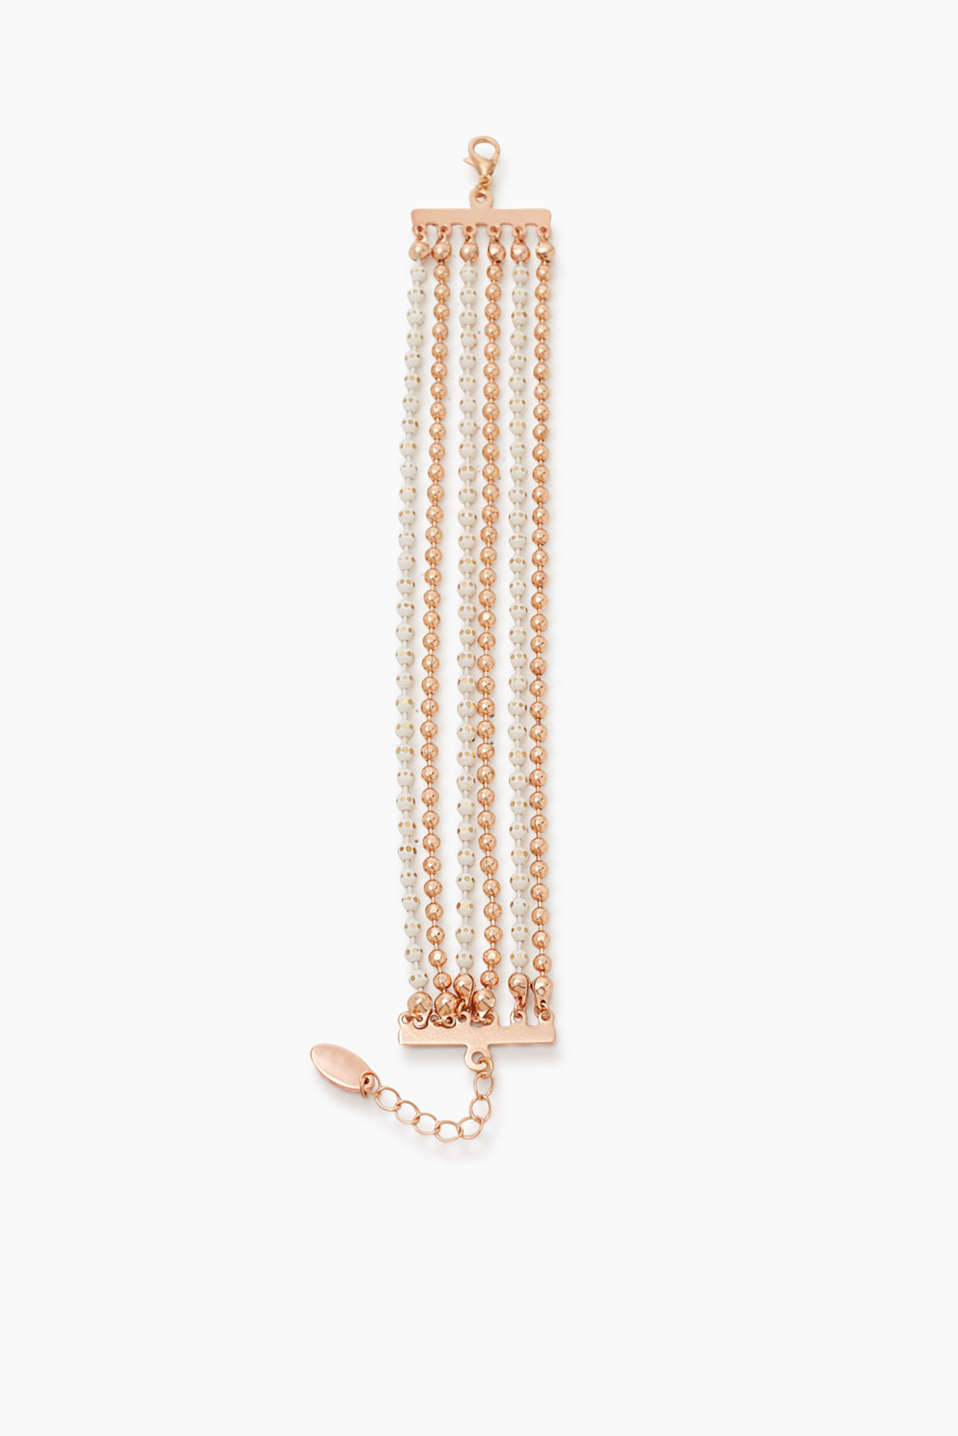 Enchanting metal bracelet with facet-cut beads in rose gold and white